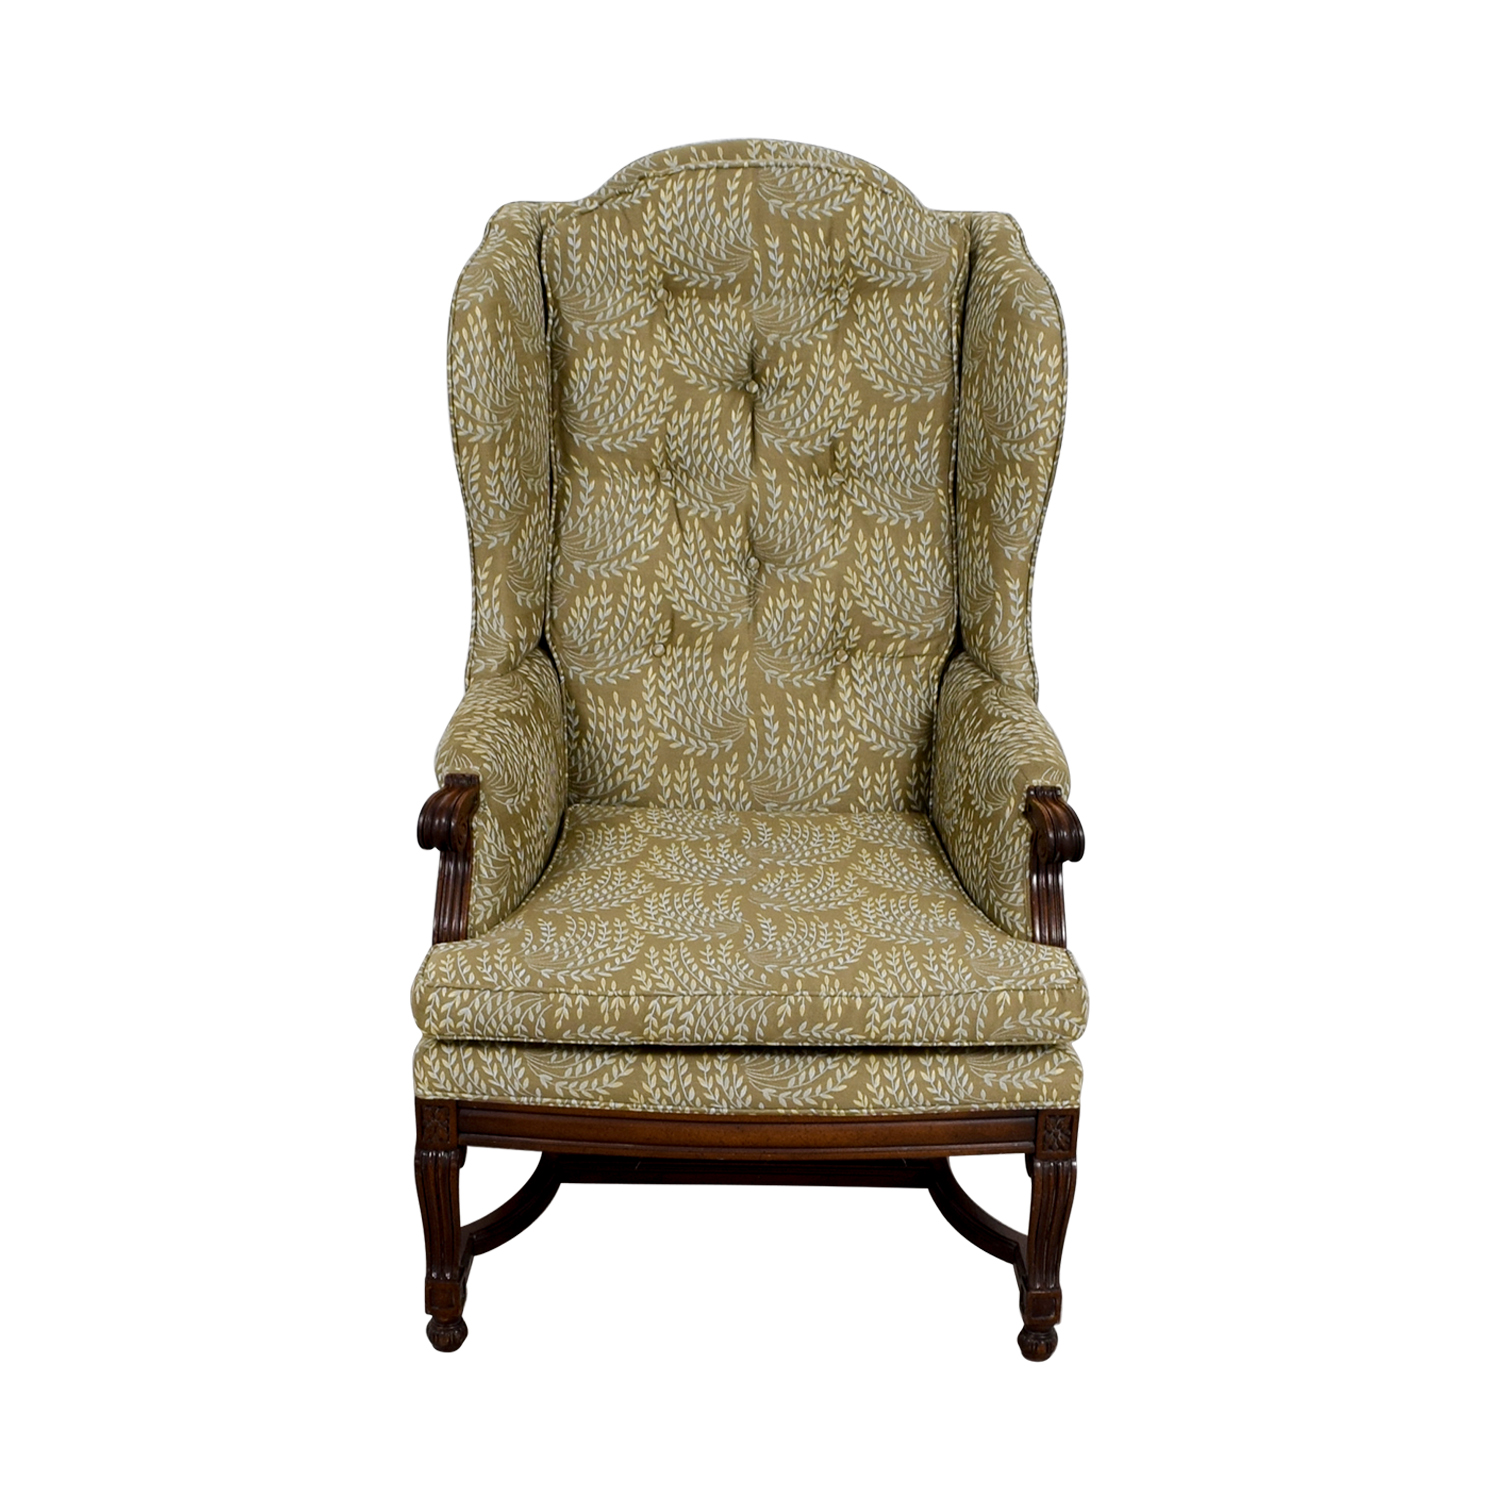 Vintage Accent Chair 77 Off Hickory Hickory Olive Vintage Accent Chair Chairs